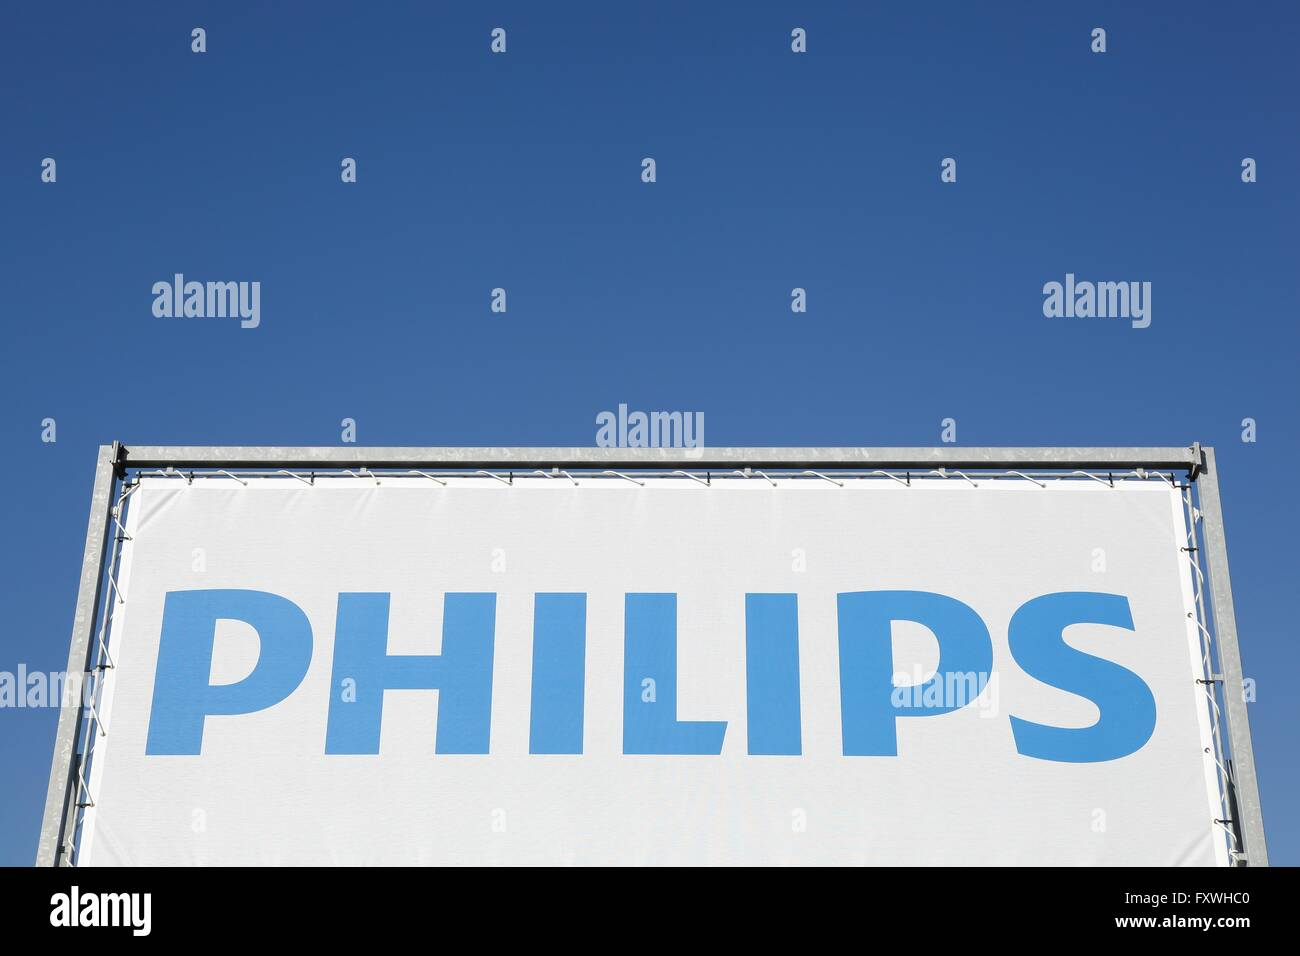 Philips sign on a banner - Stock Image